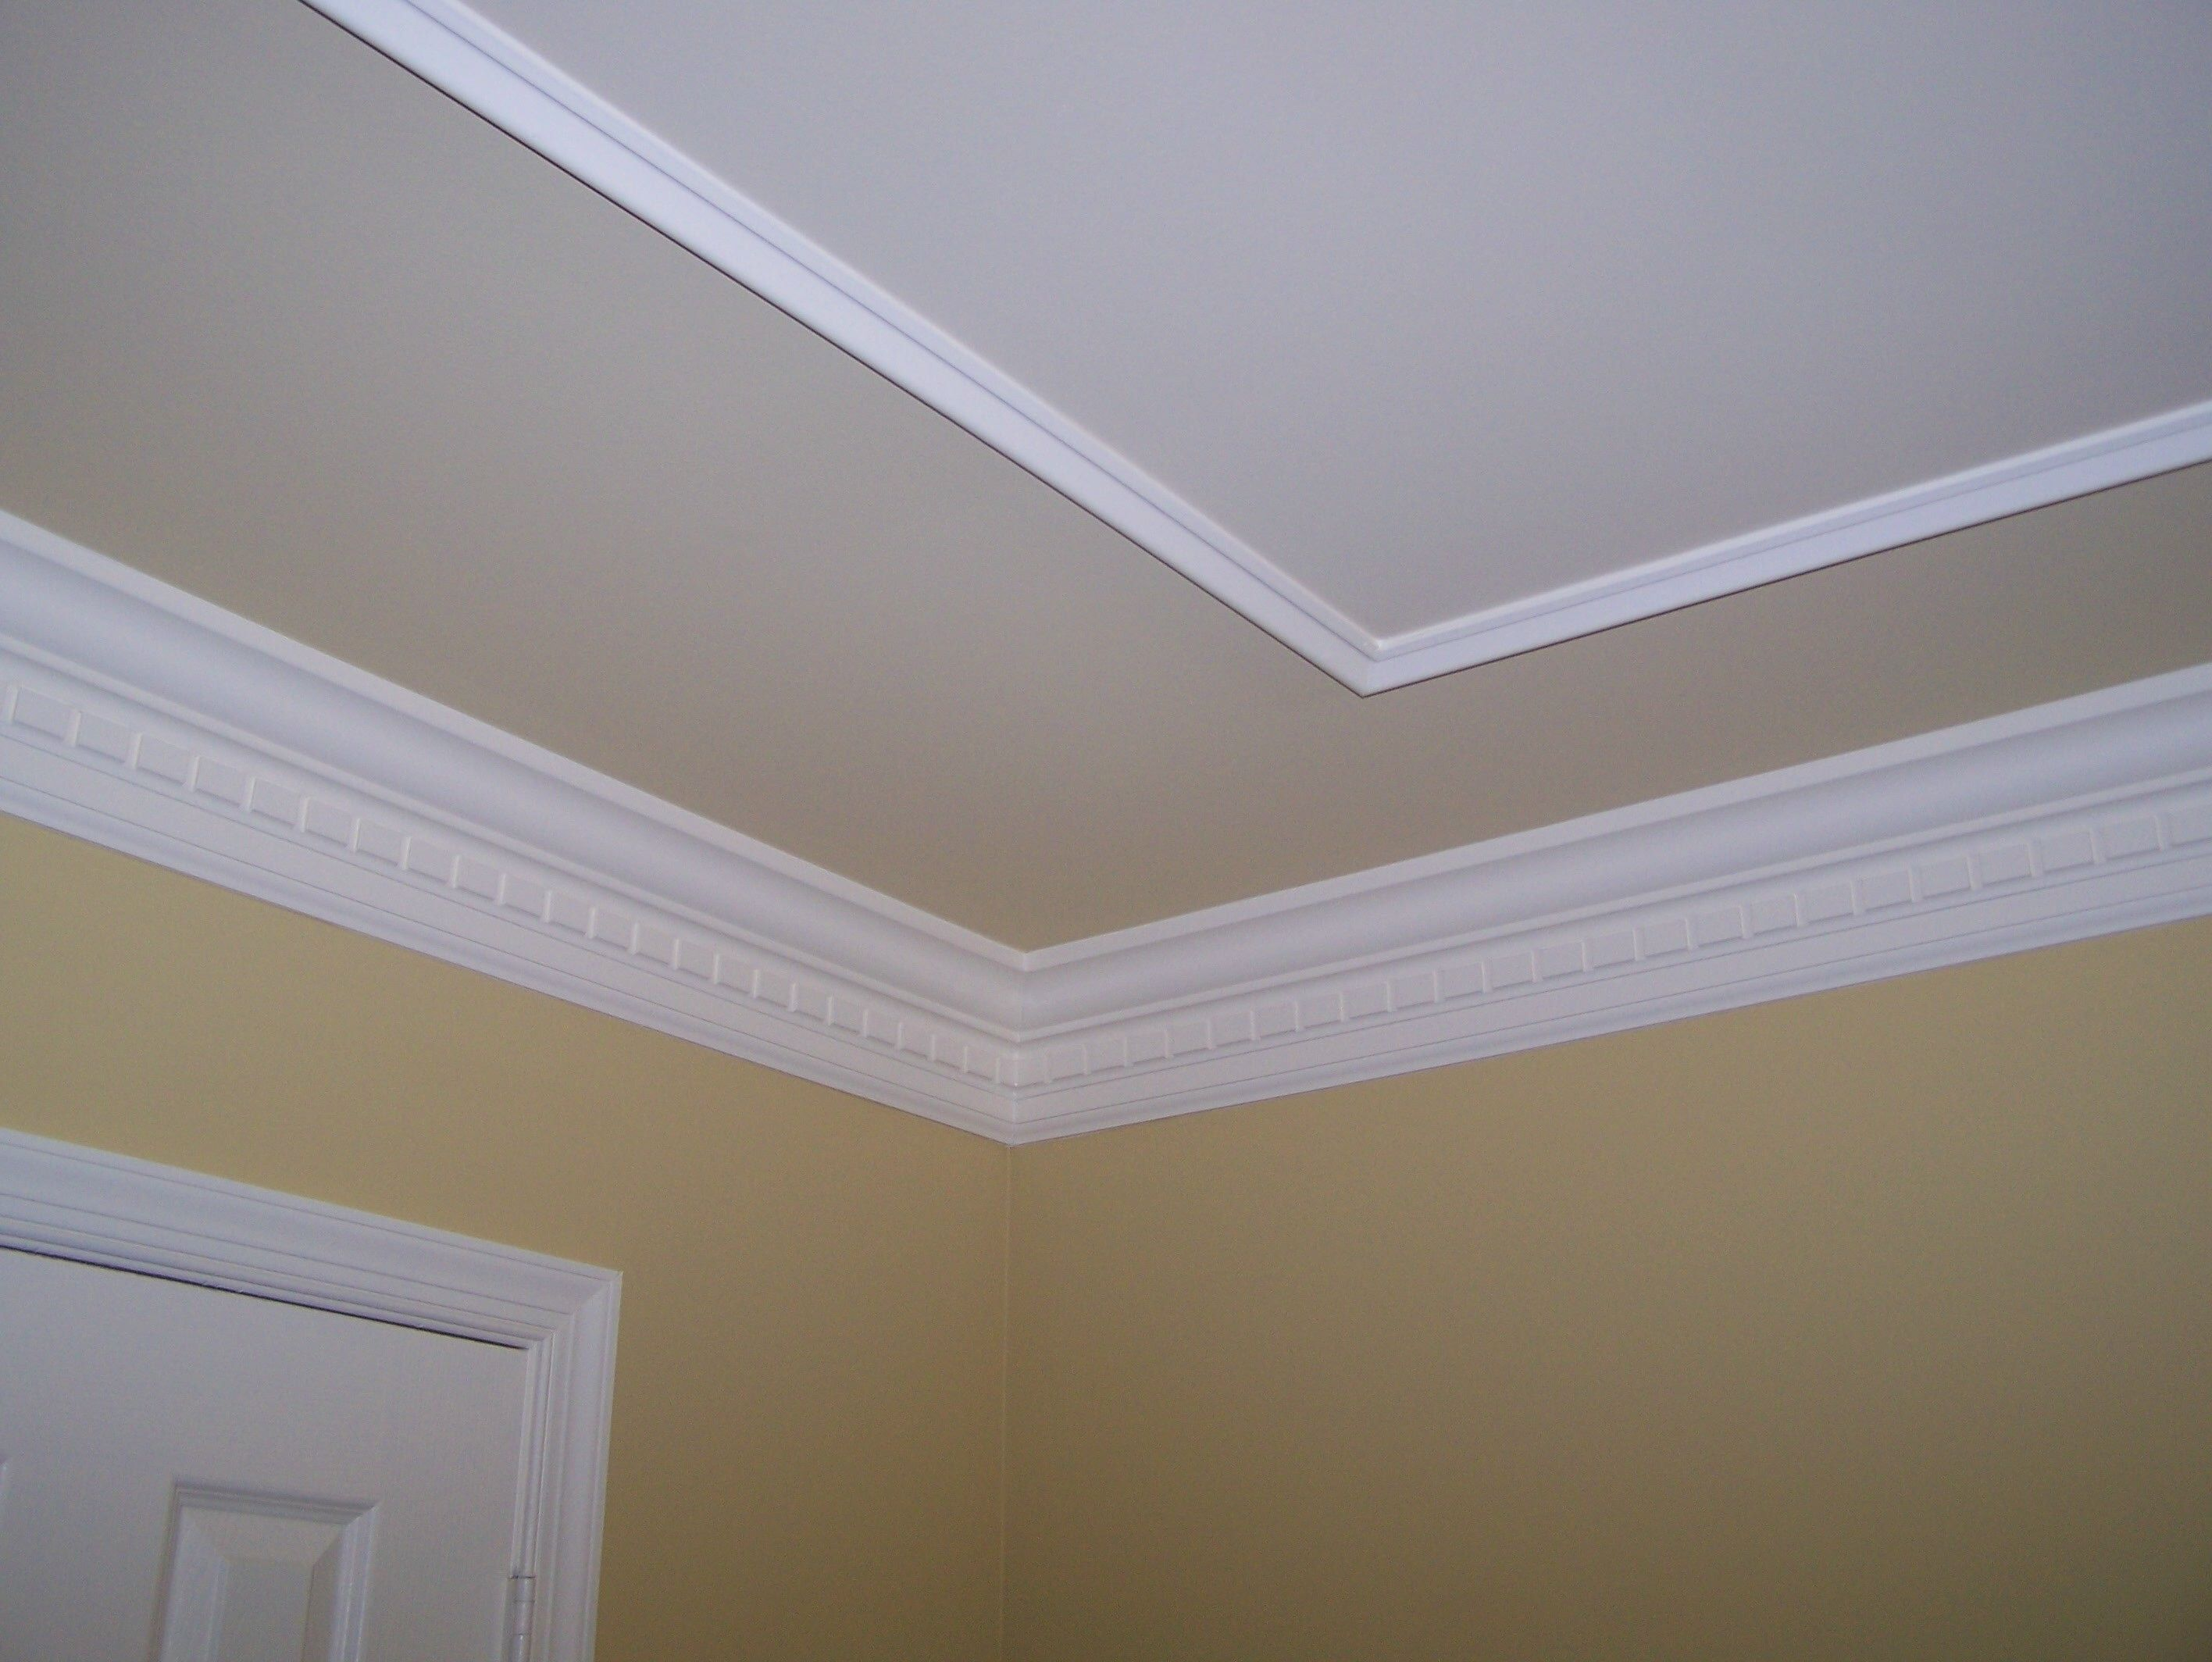 Painted Ceiling Gallery Carpentry Drywall Painted Ceiling